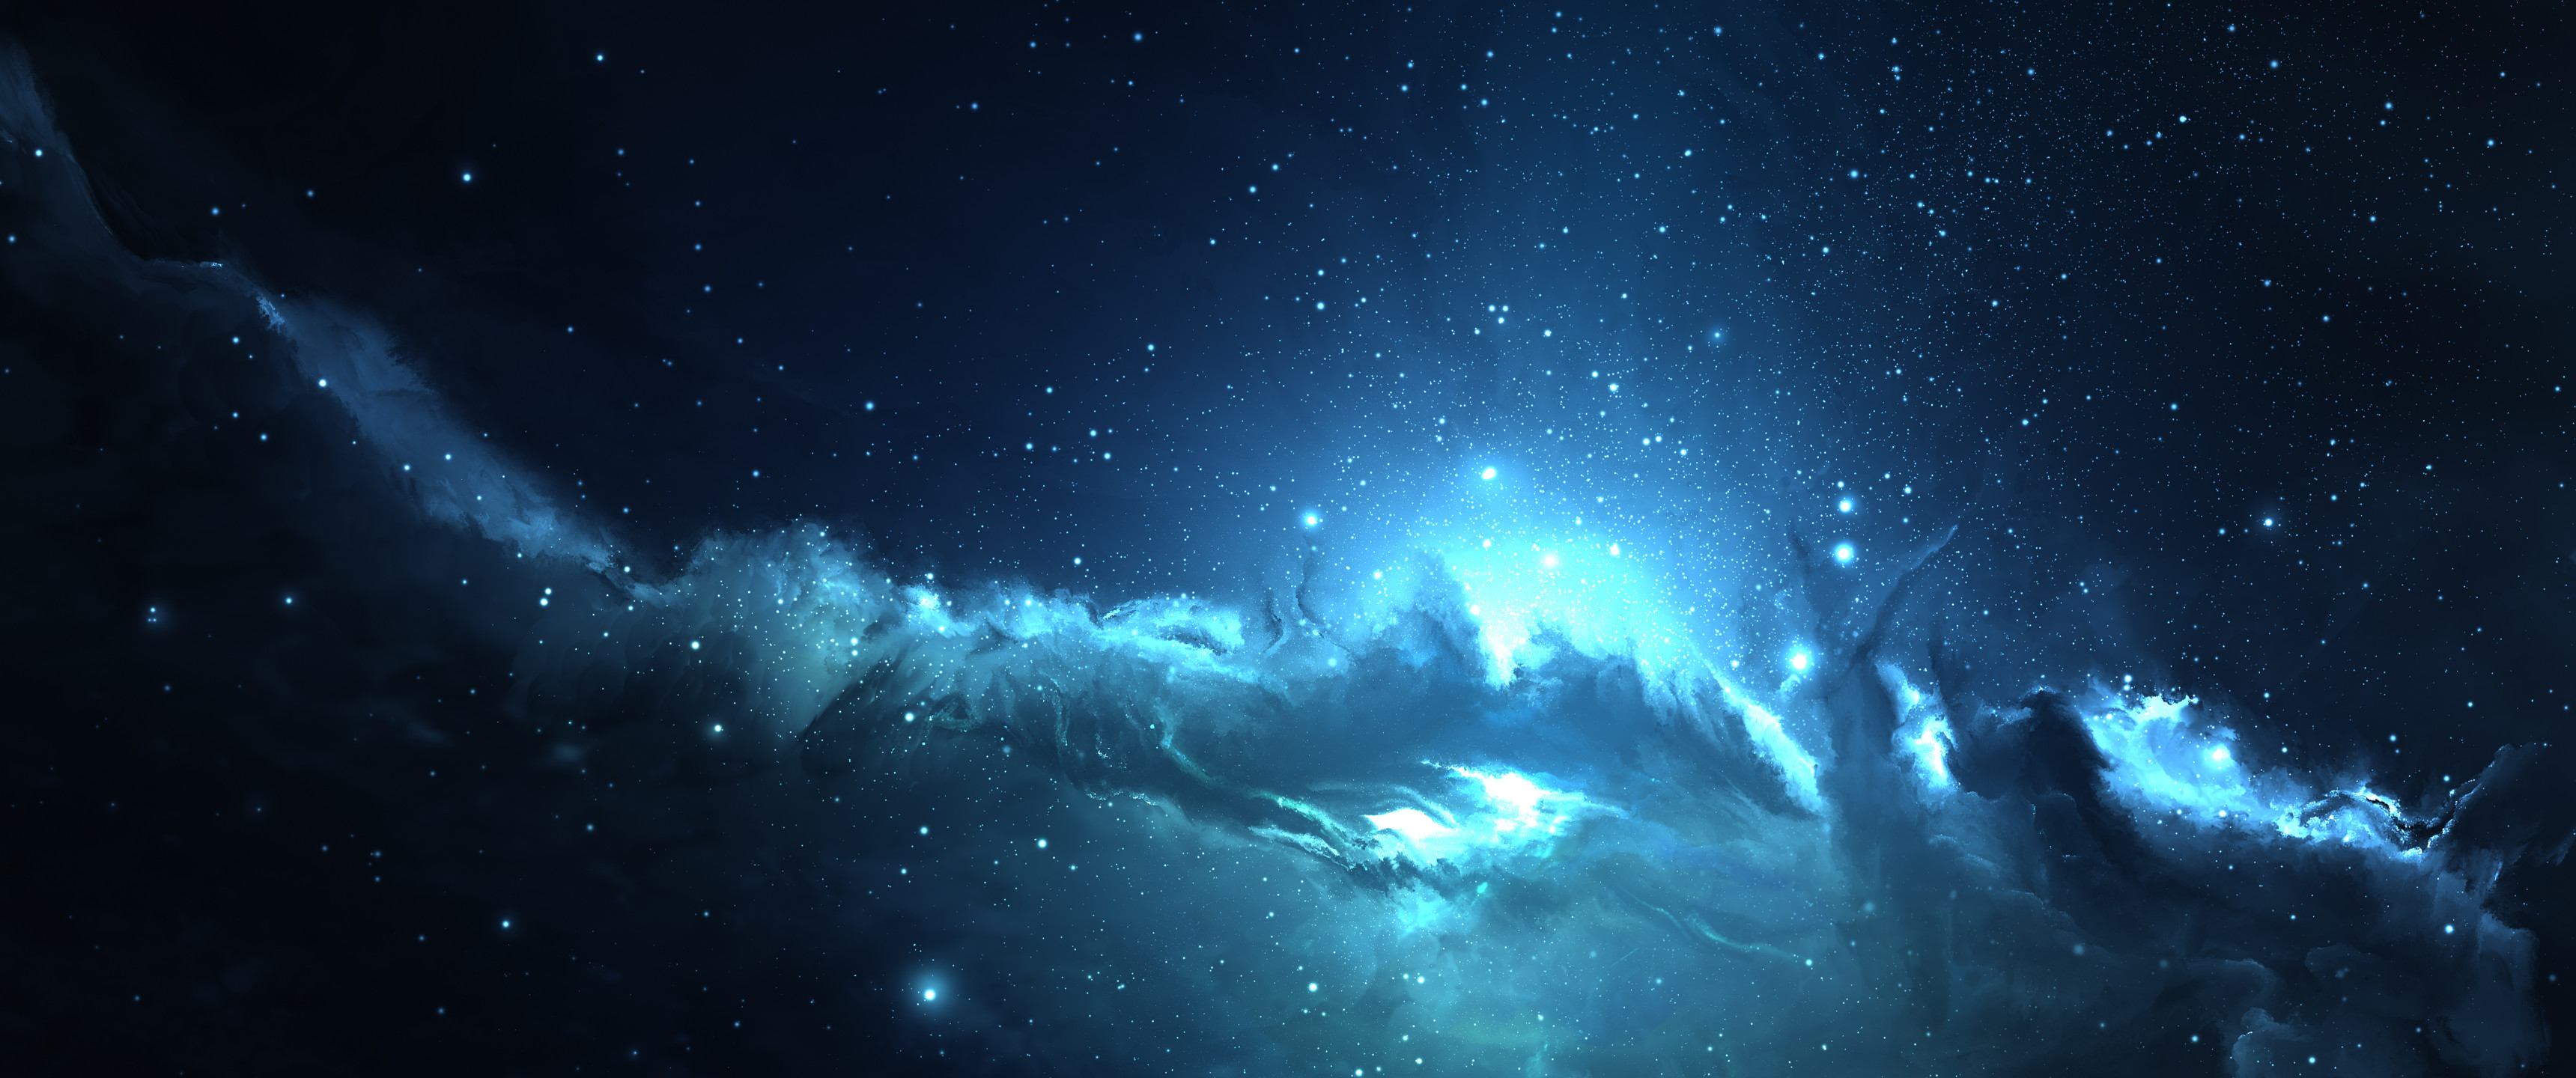 3440x1440 ... ultrawide, Astrophotography, Space, Blue Wallpapers HD Desktop .